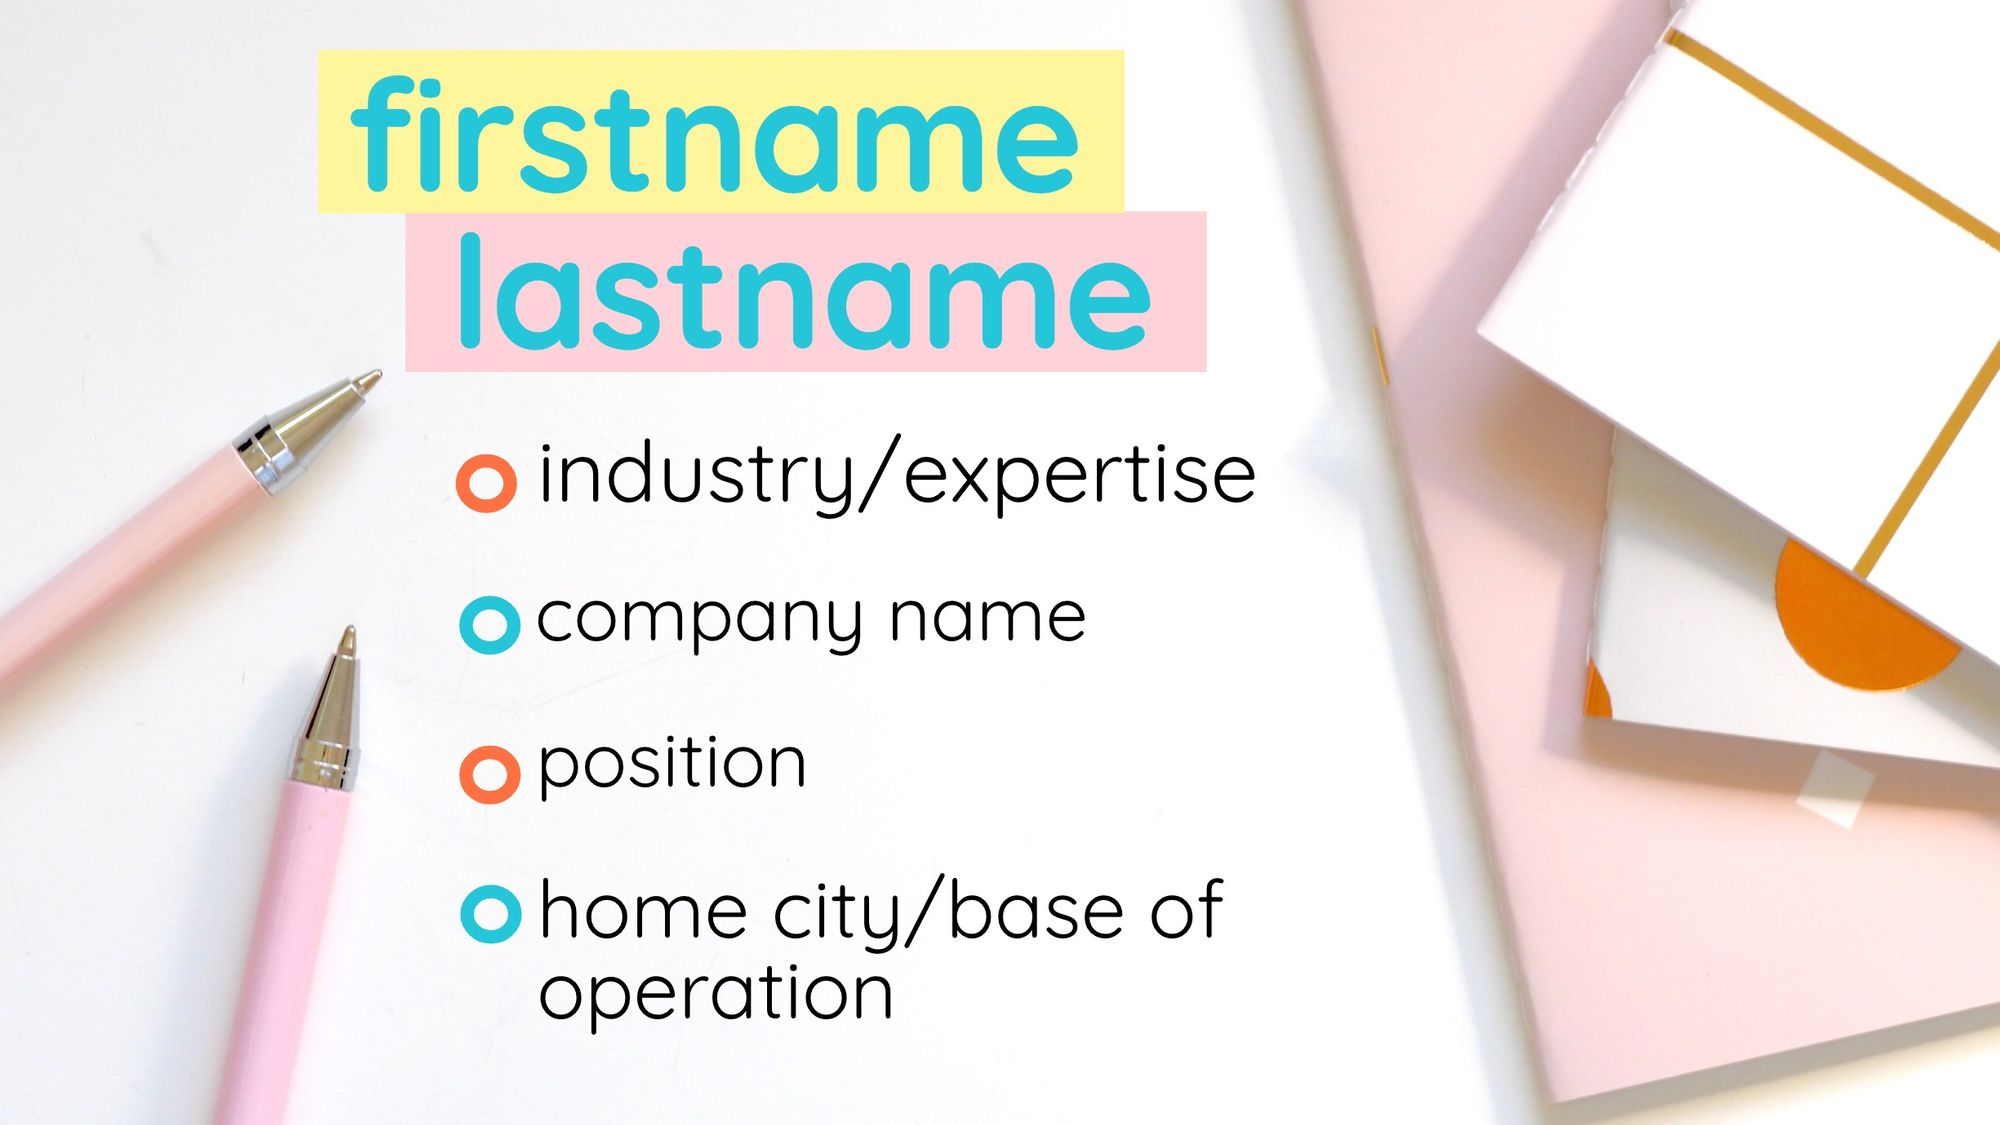 The third business card template, with a colorful pink and yellow theme.